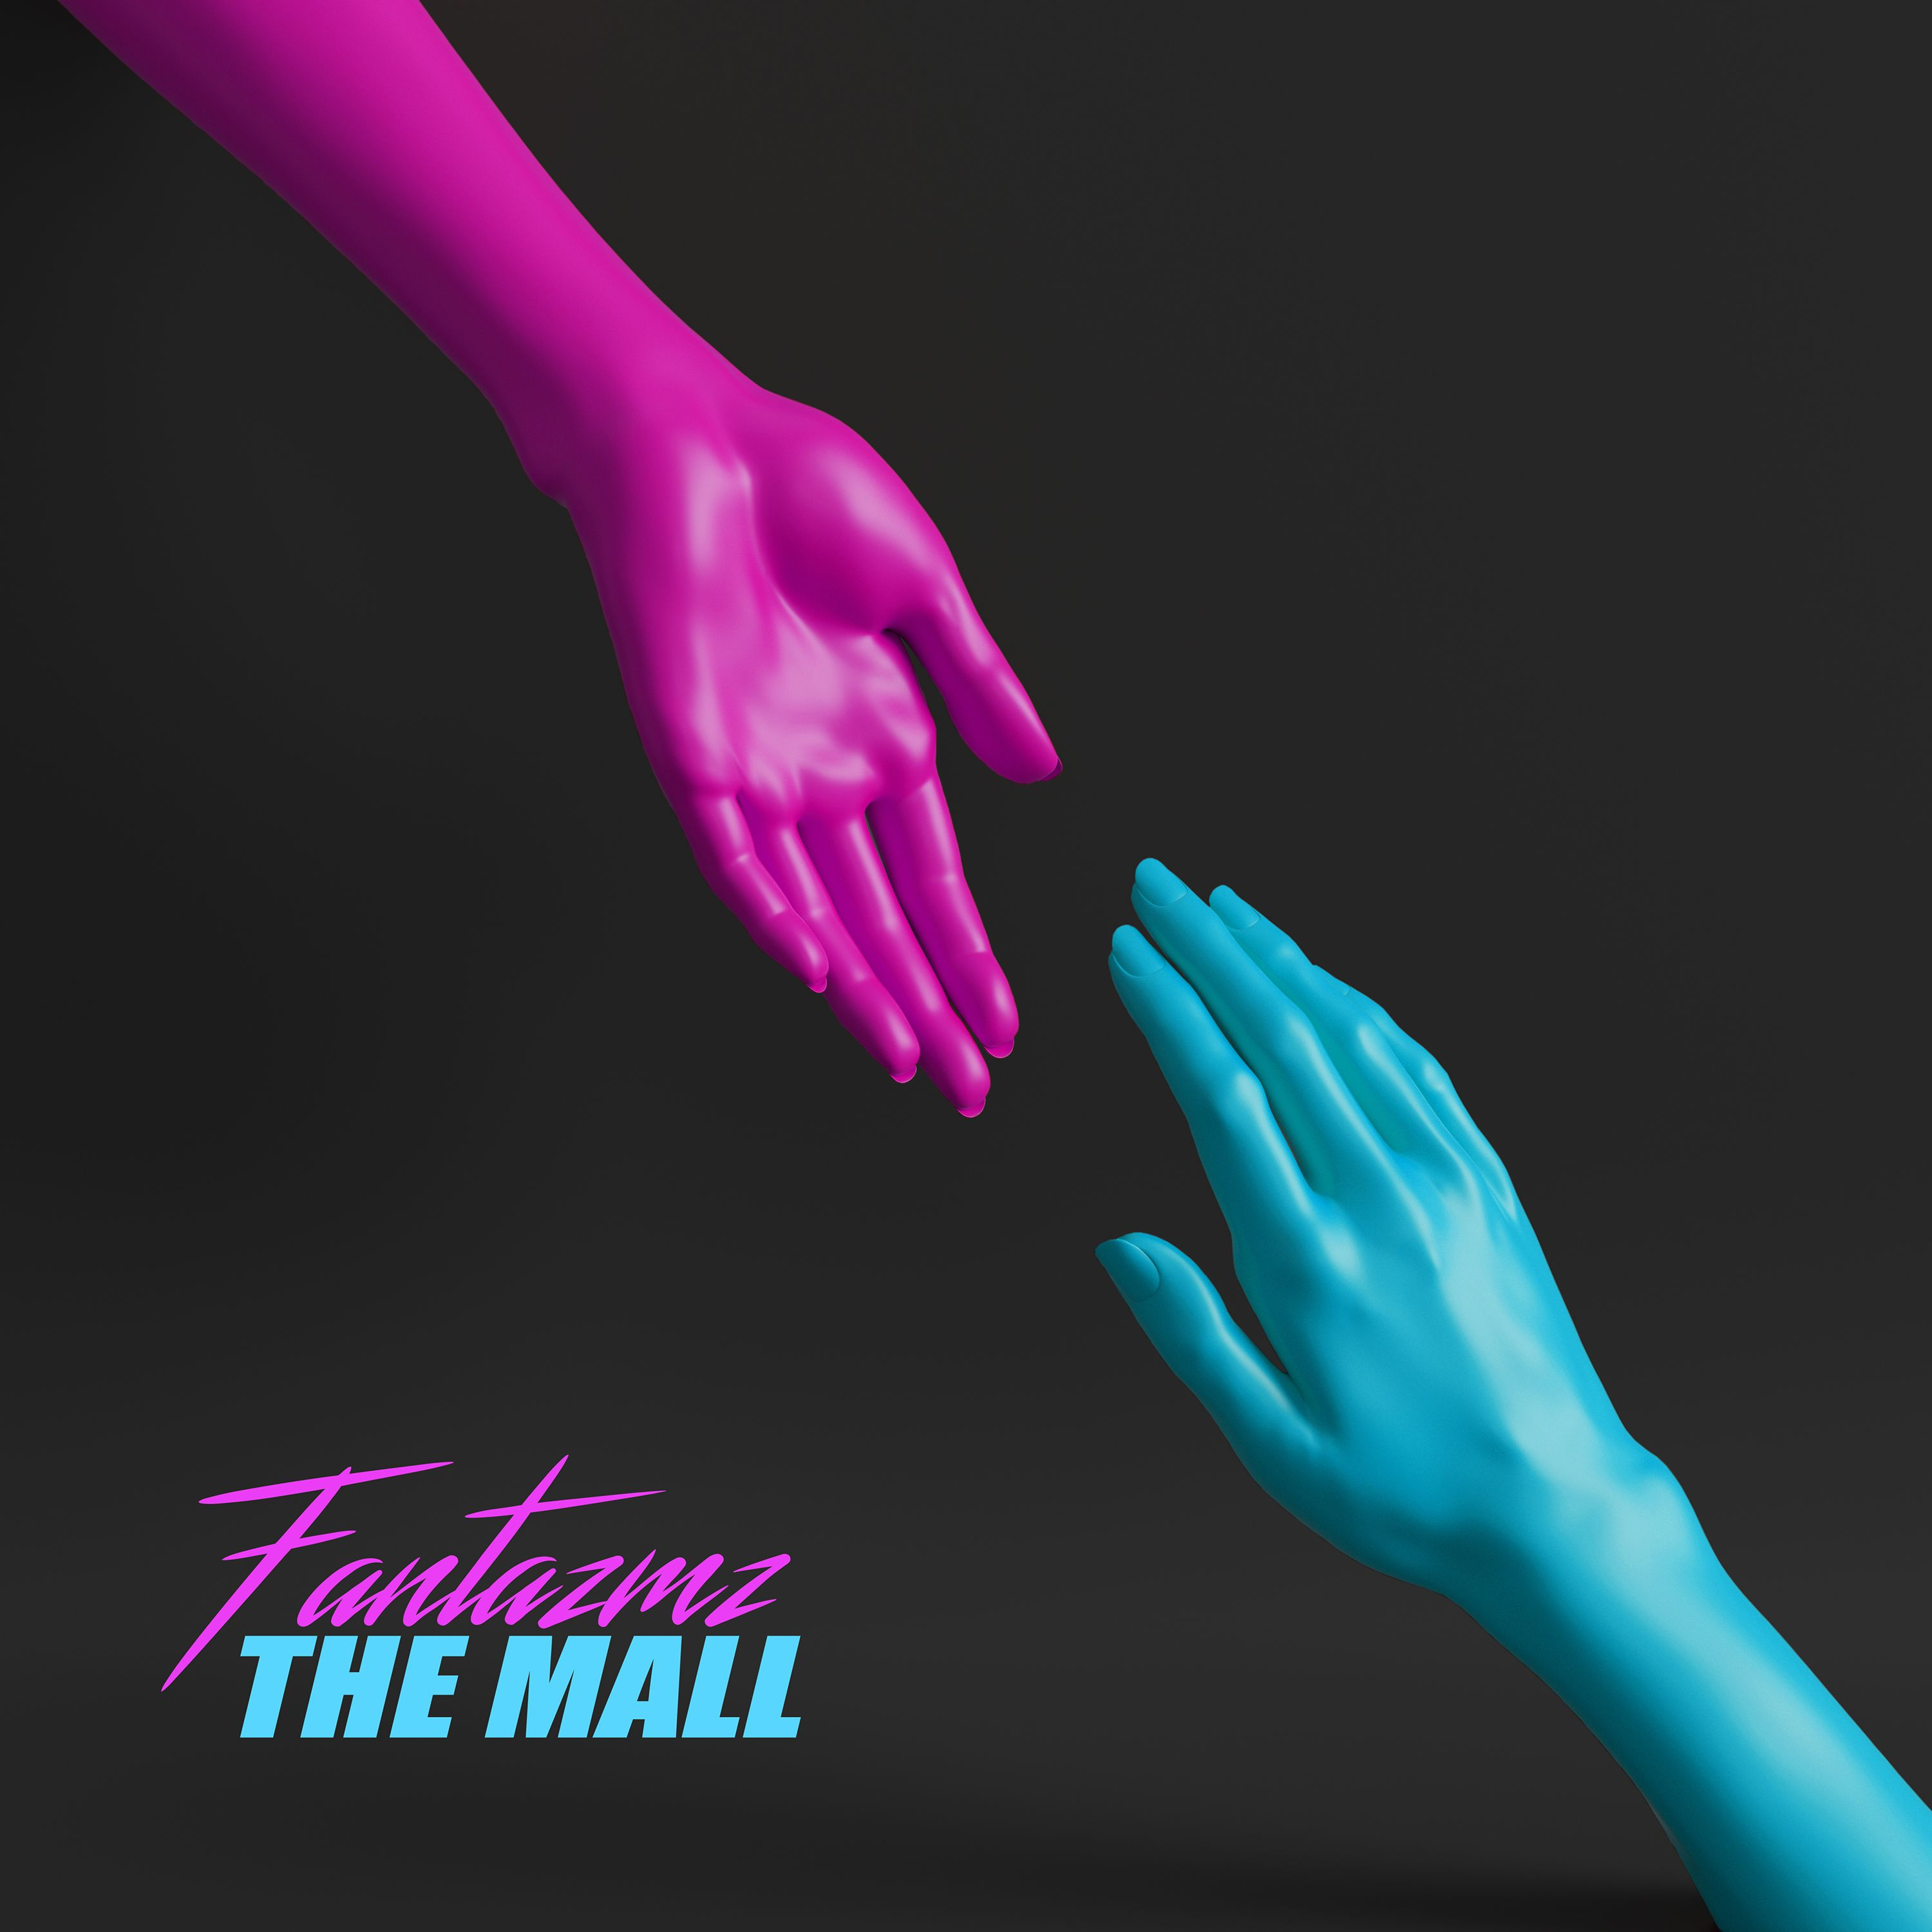 fantazmz-the-mall